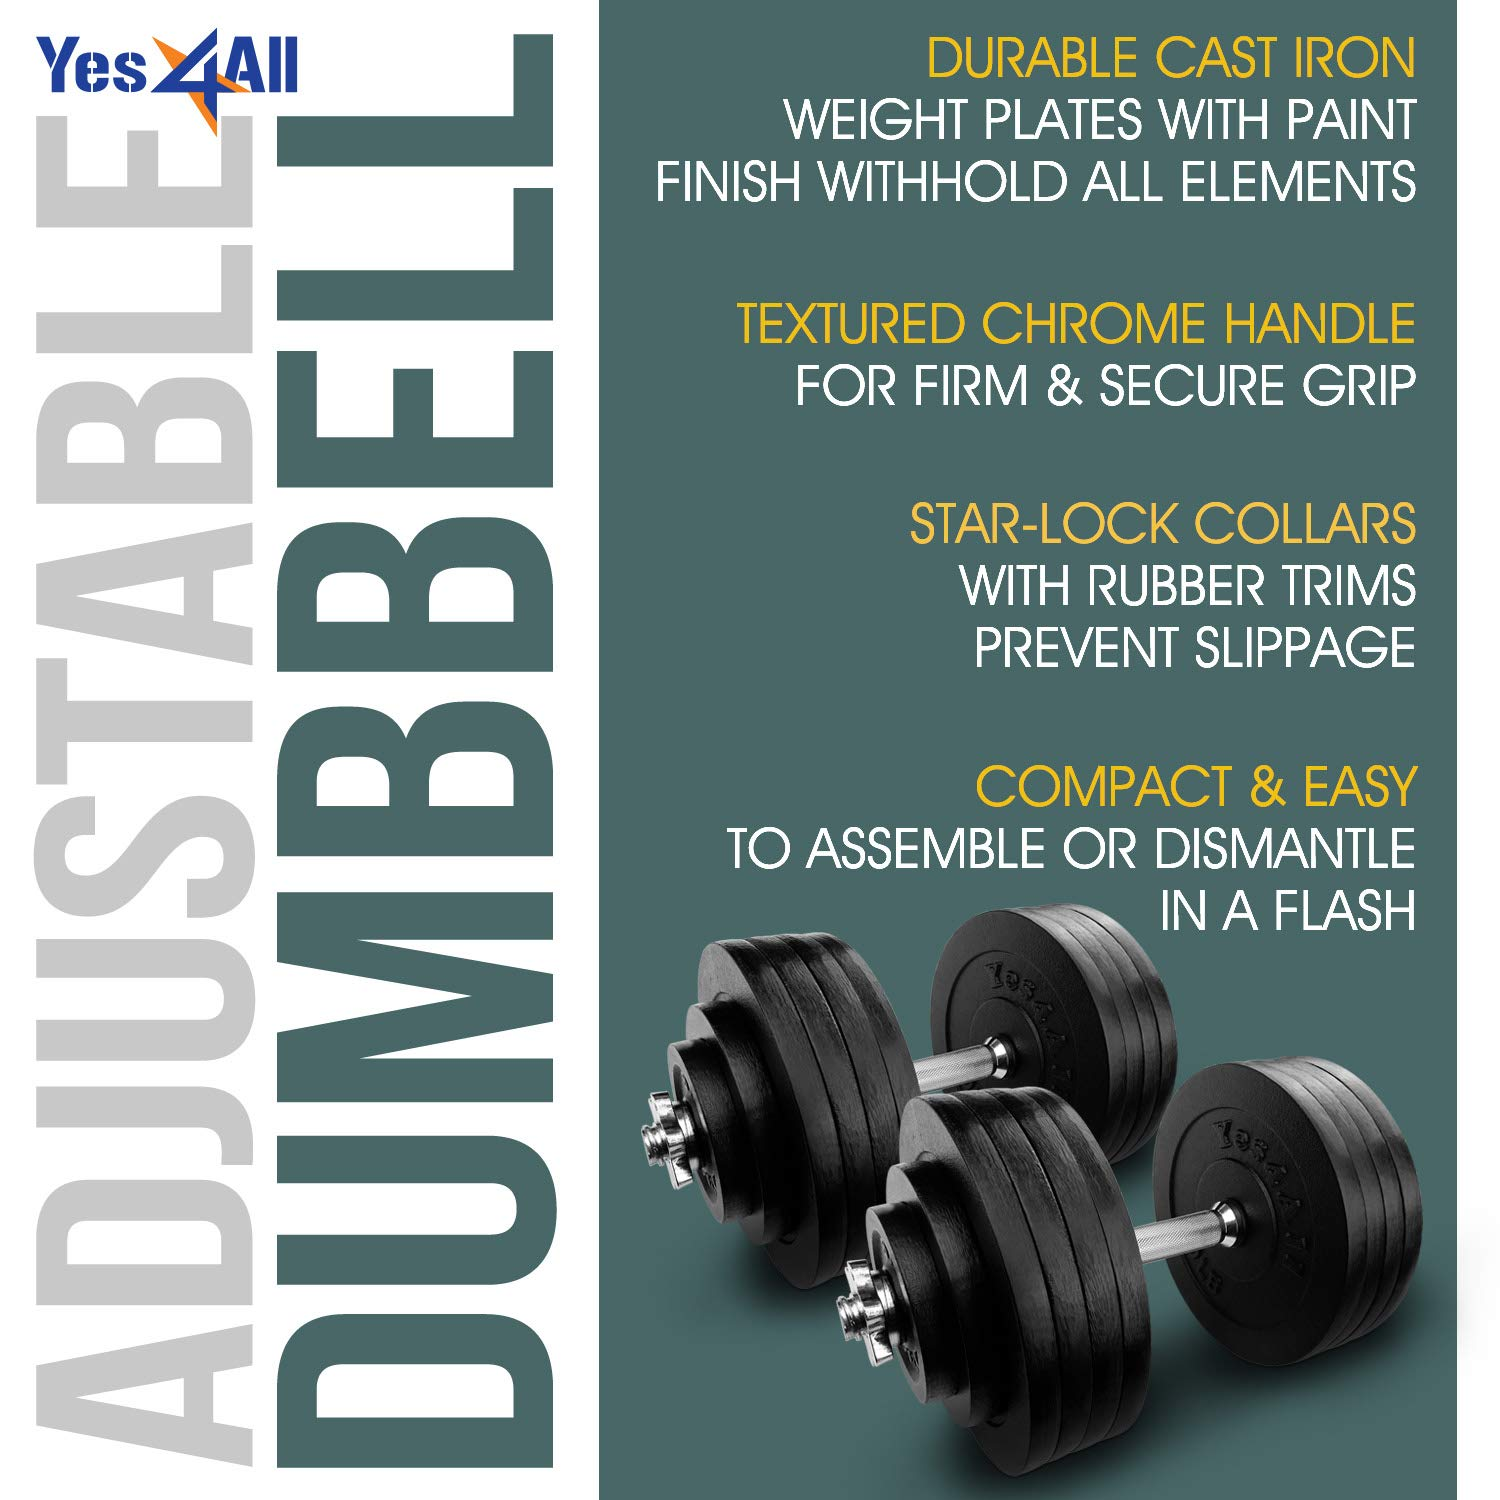 Yes4All Adjustable Dumbbells - 200 lb Dumbbell Weights (Pair) by Yes4All (Image #1)